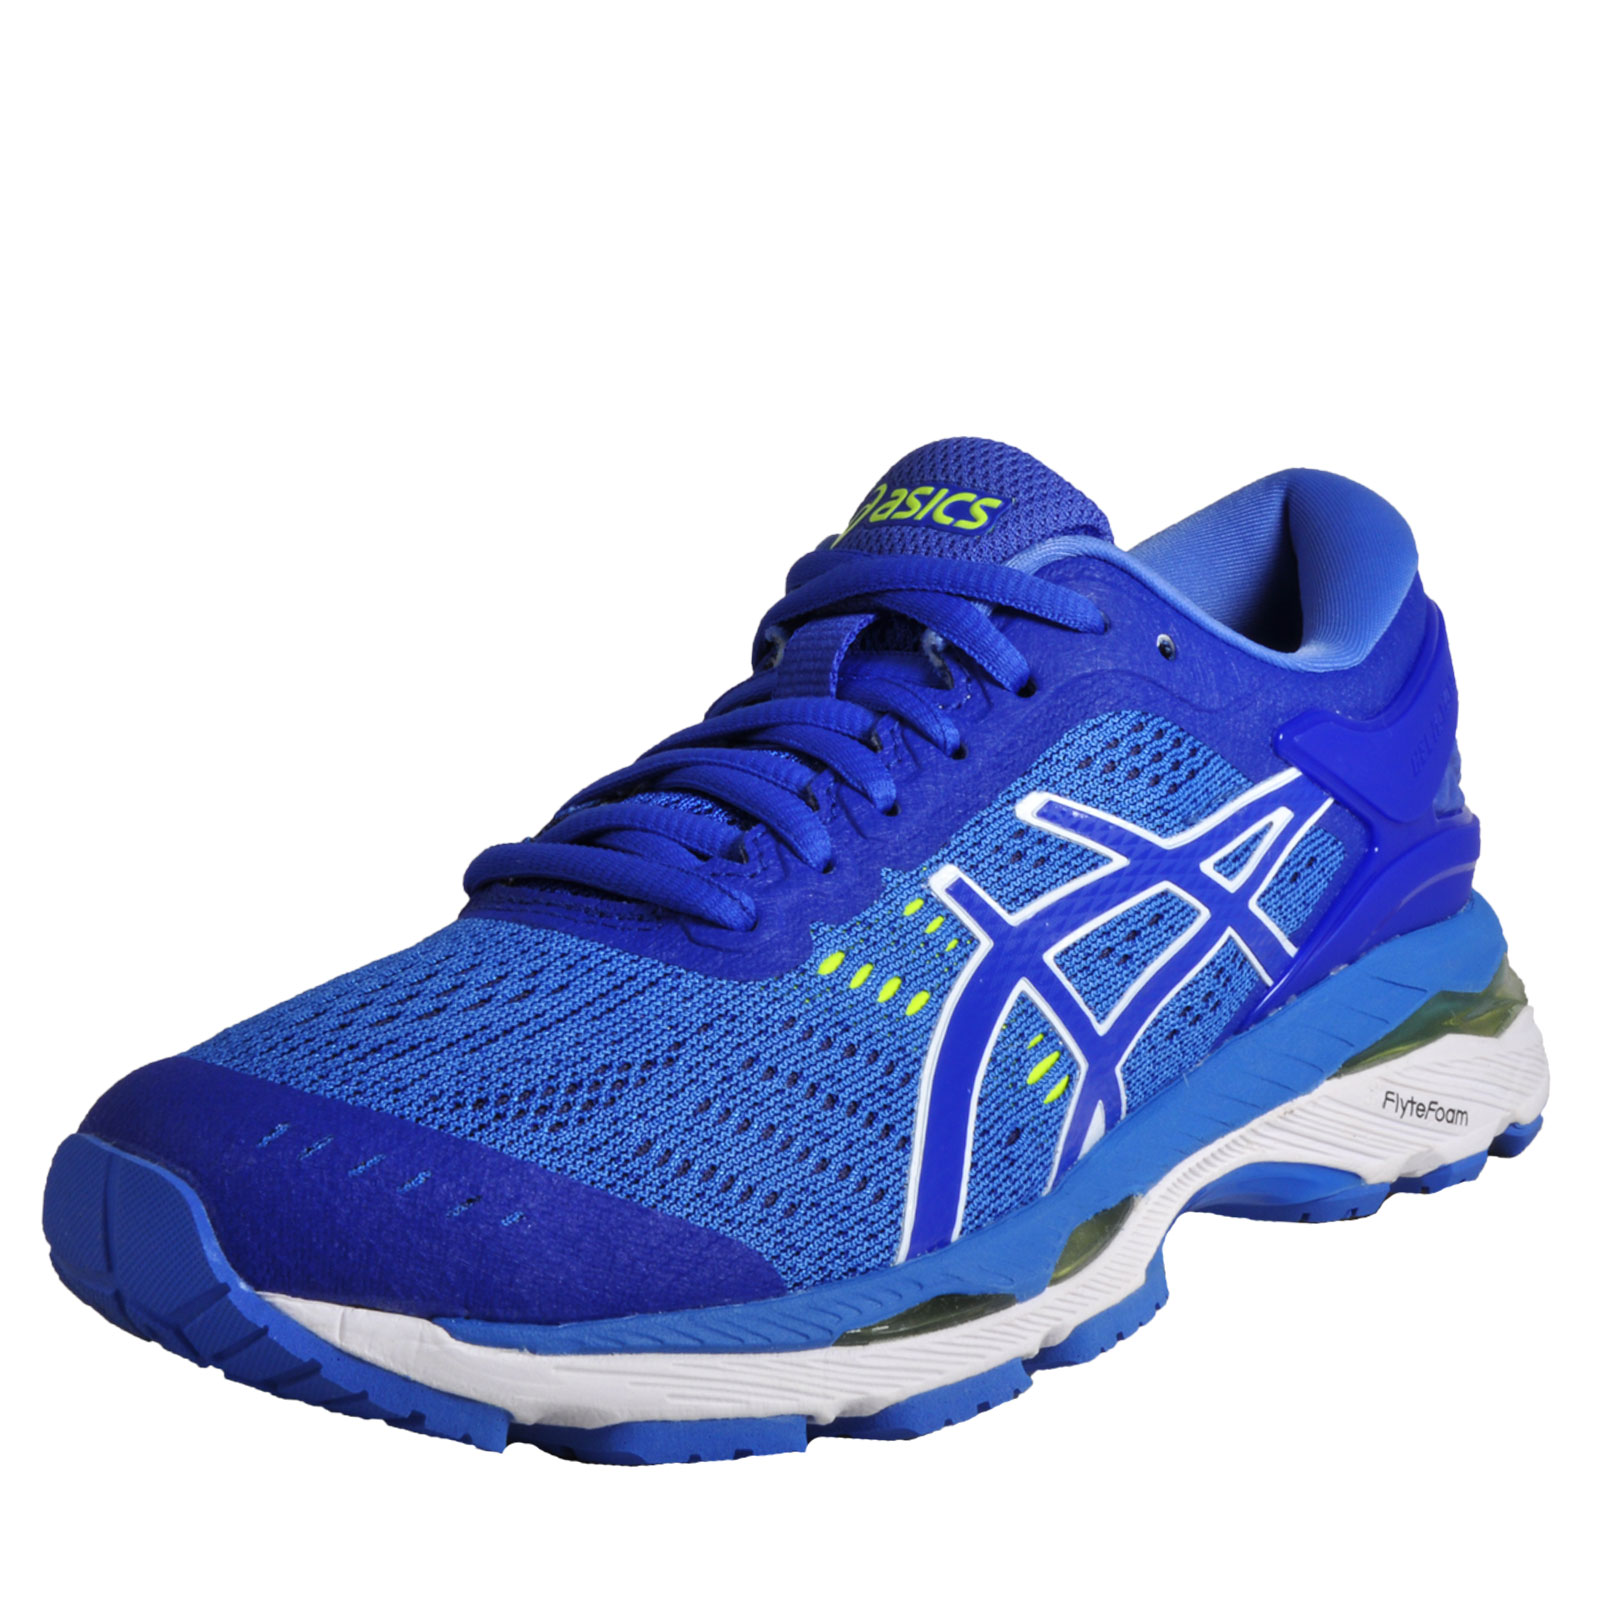 asics gel kayano 24 women 39 s premium running shoes performance trainers ebay. Black Bedroom Furniture Sets. Home Design Ideas